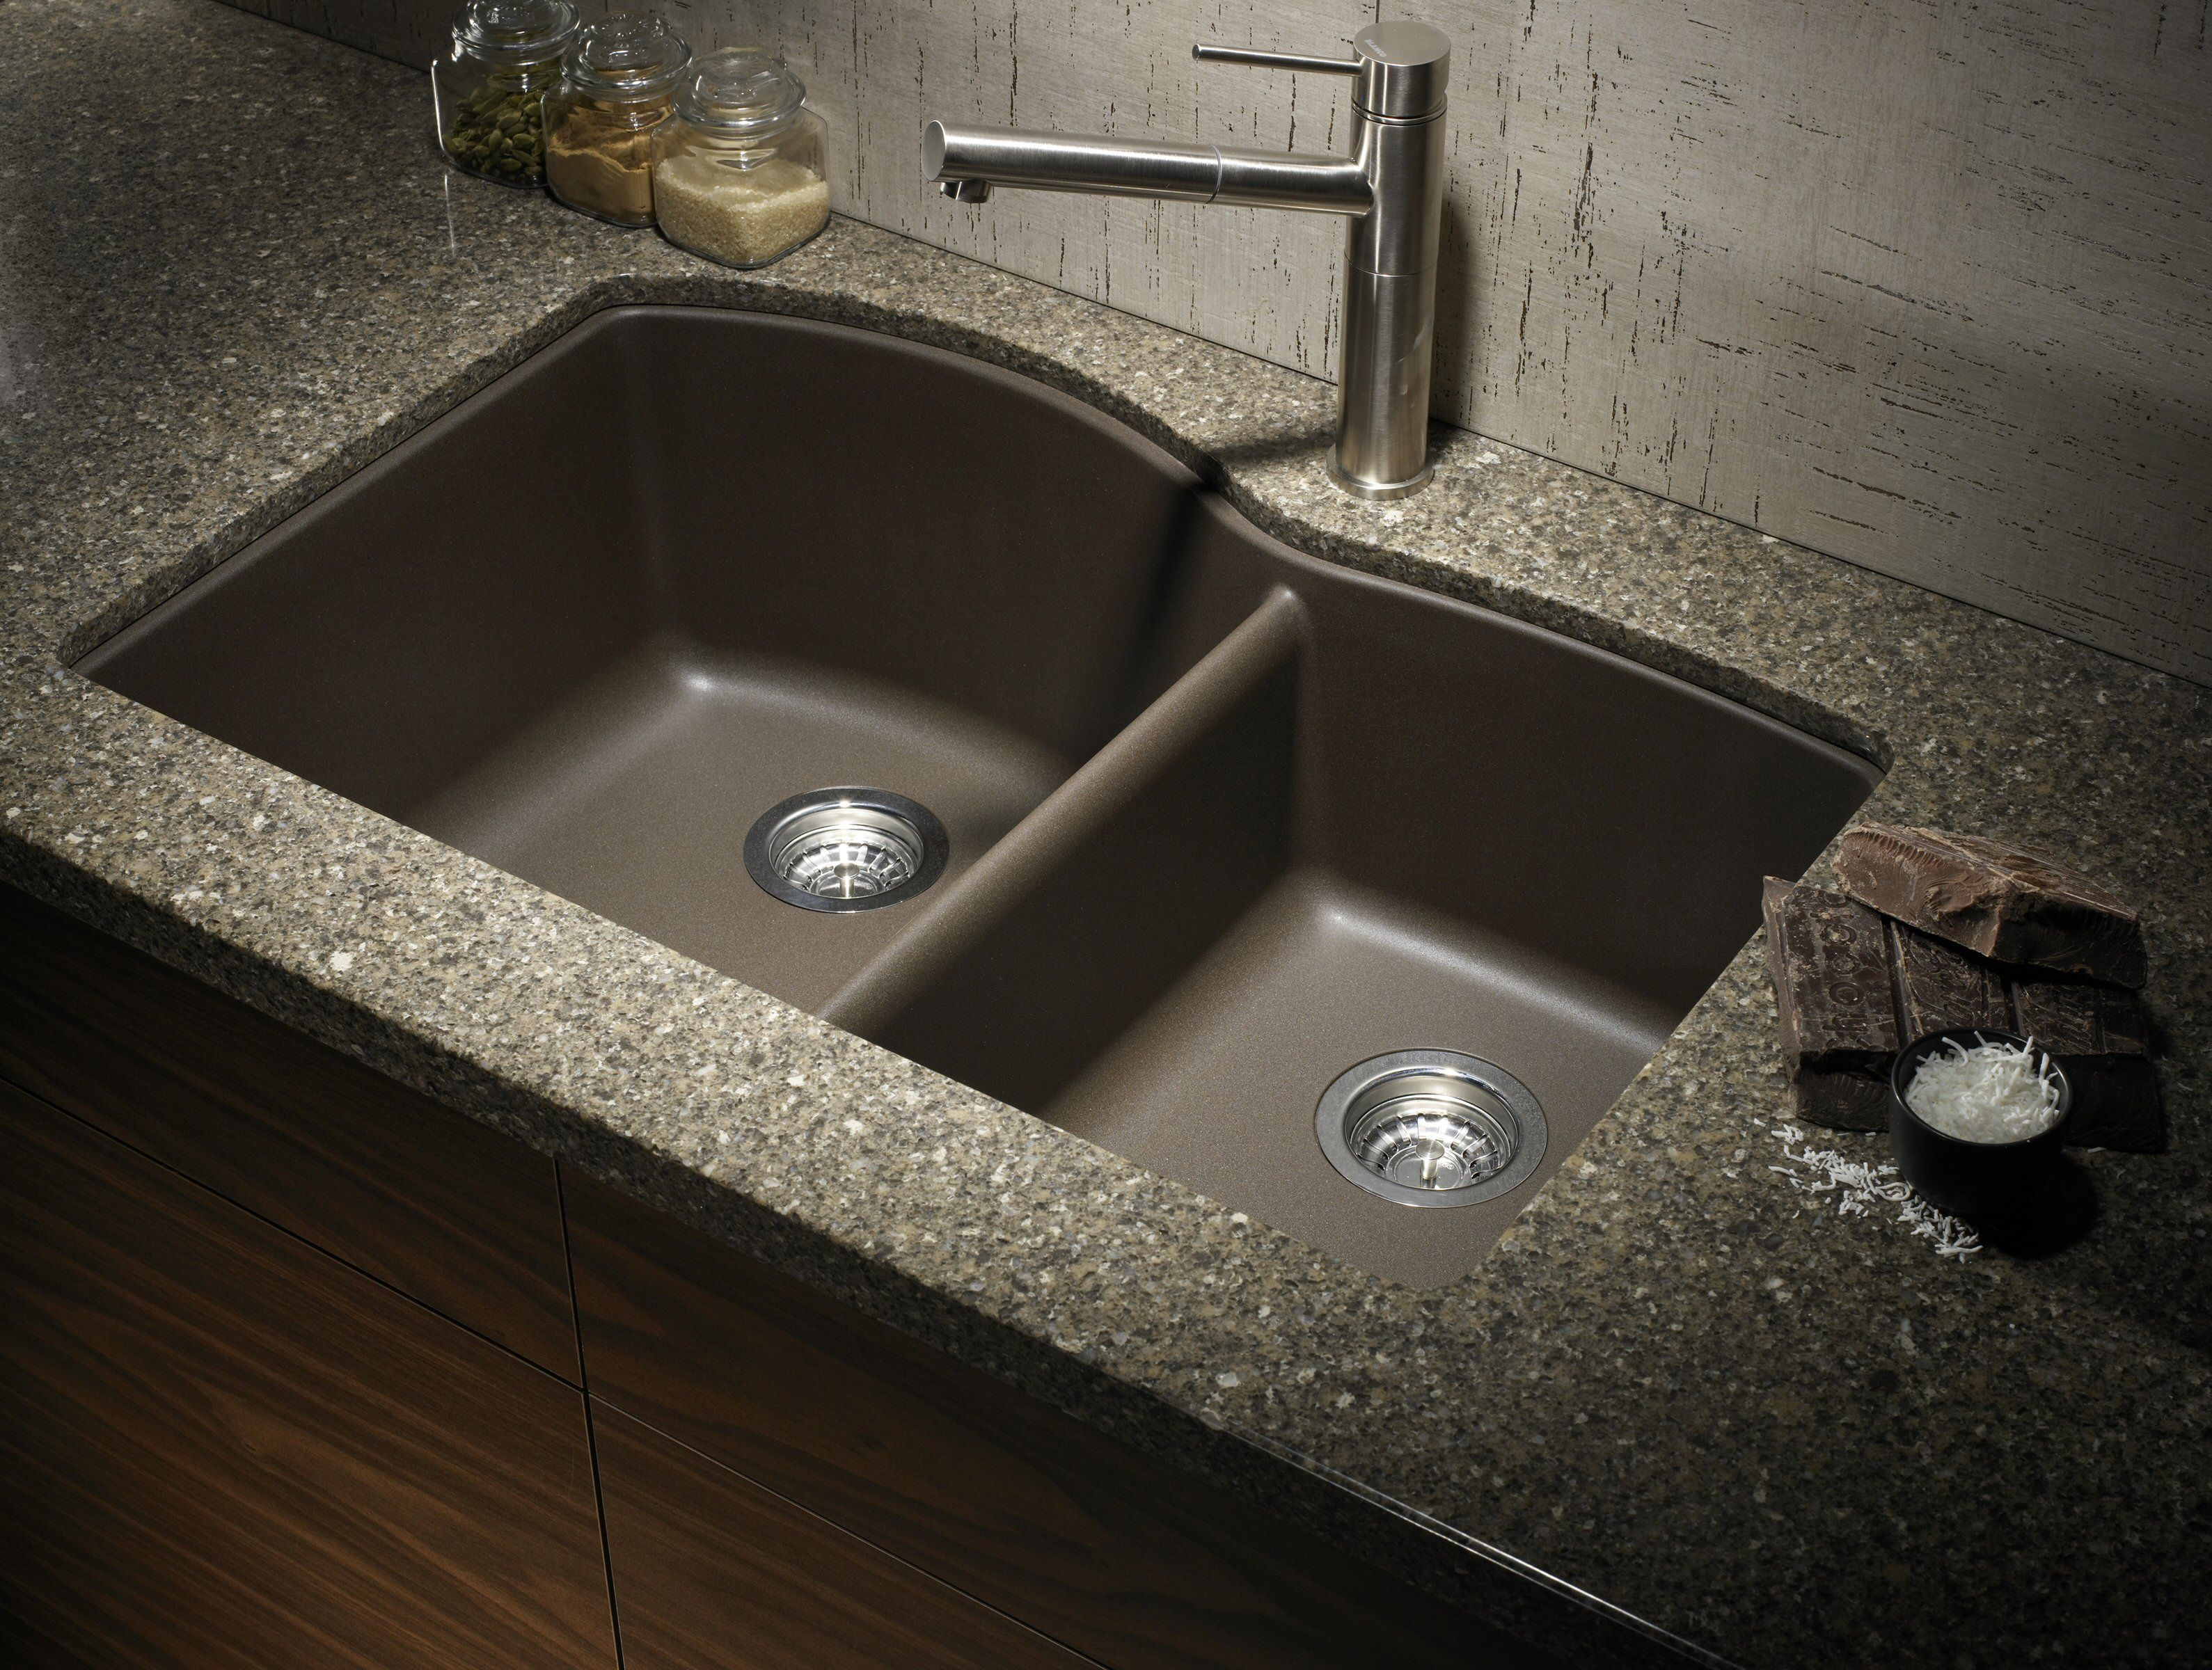 kitchen sink kitchen sink low light grey faucet